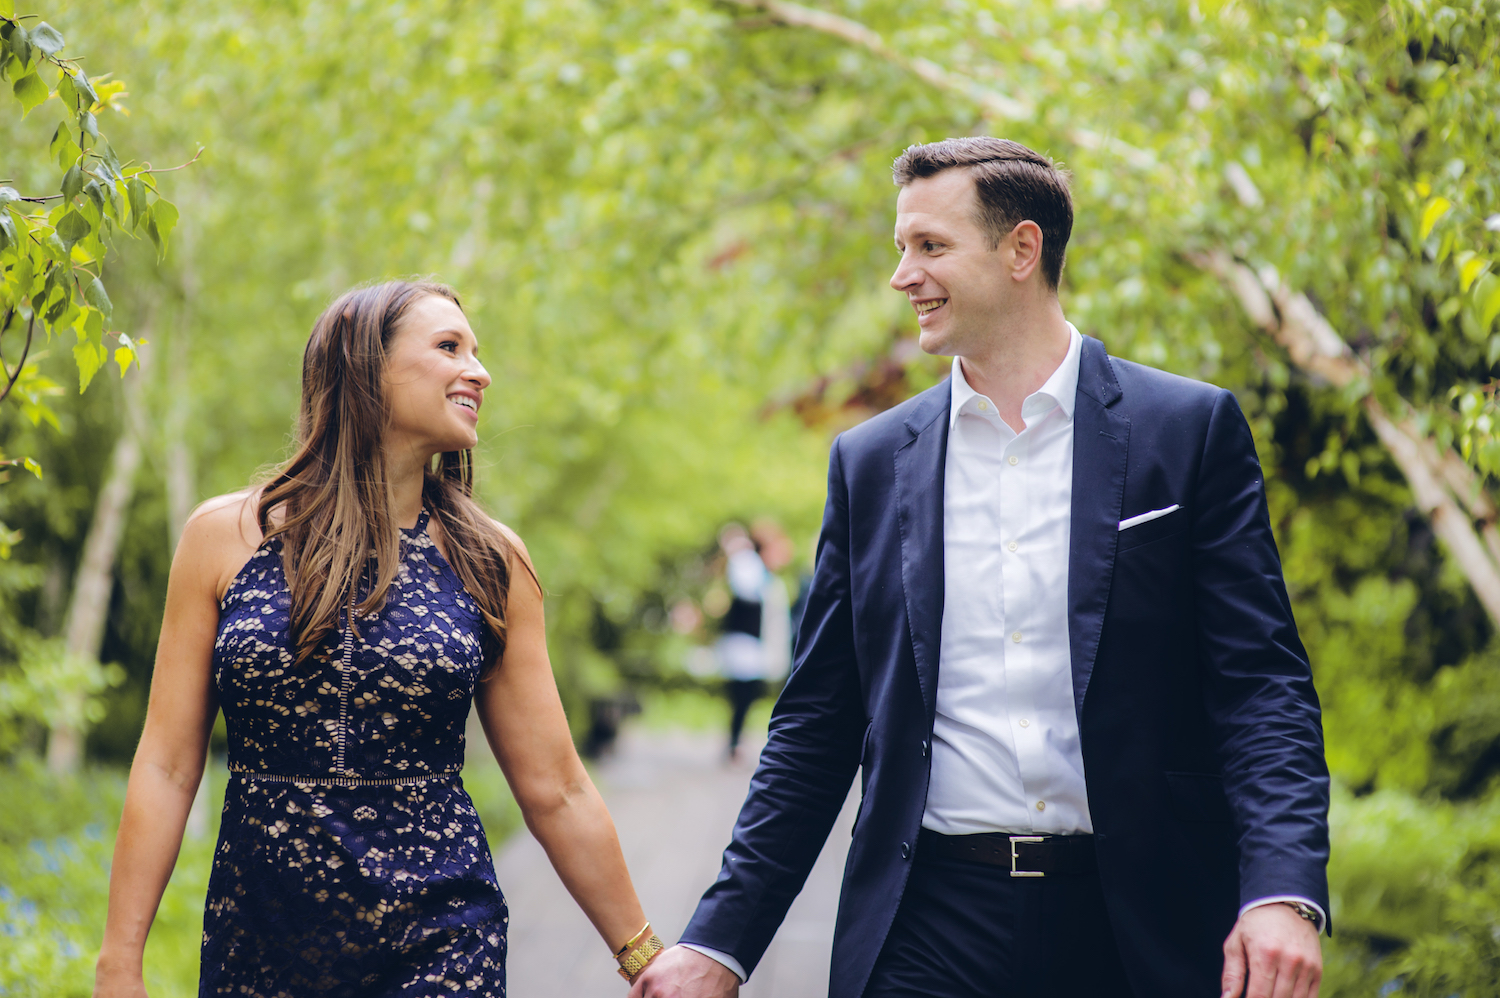 kayla&mike-walking-holding-hands-in-park-nyc-engagement-photos